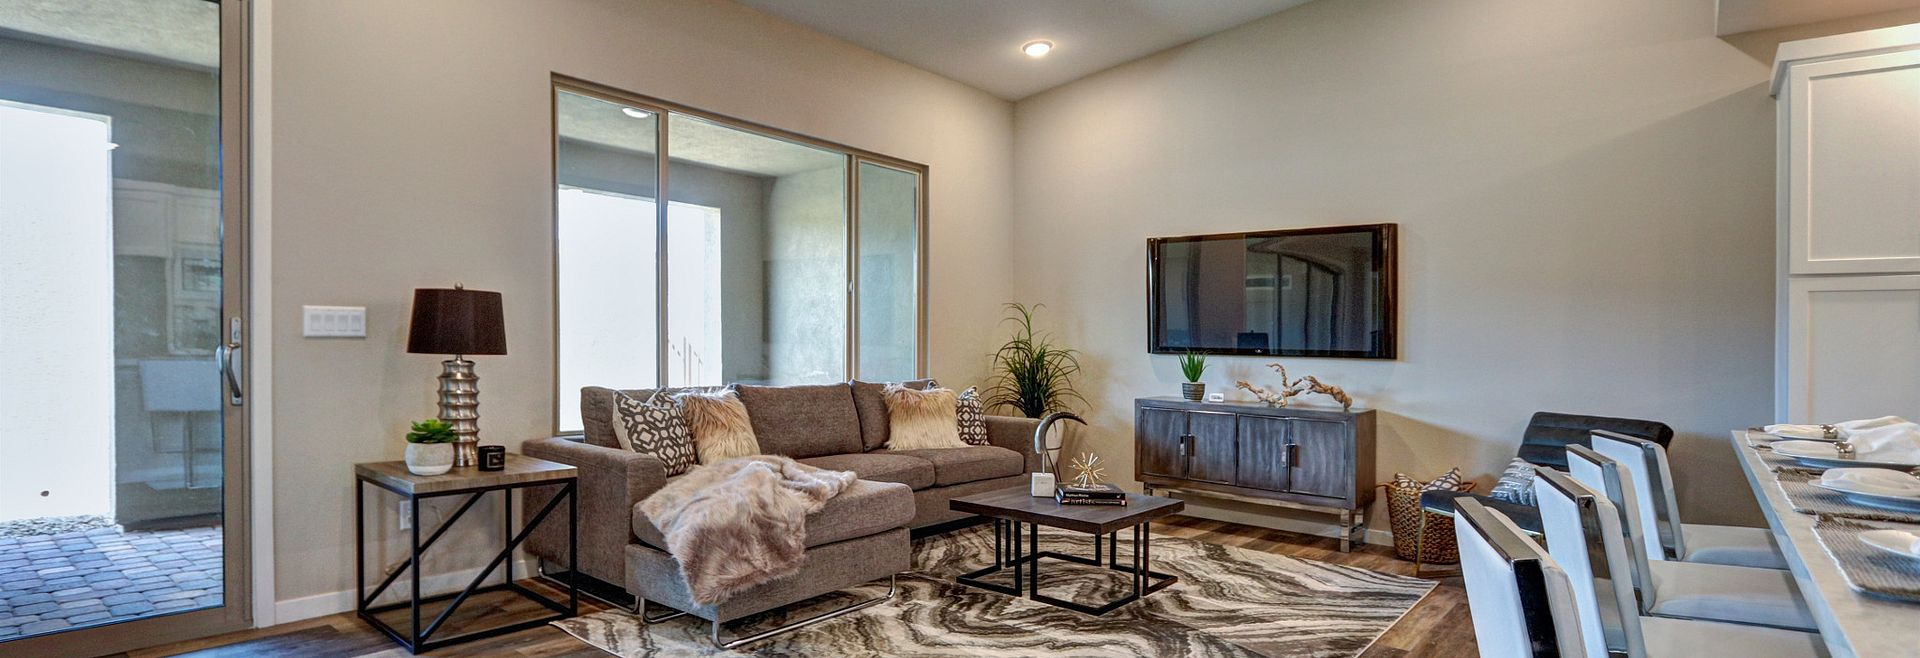 Trilogy Summerlin Reflect Great Room